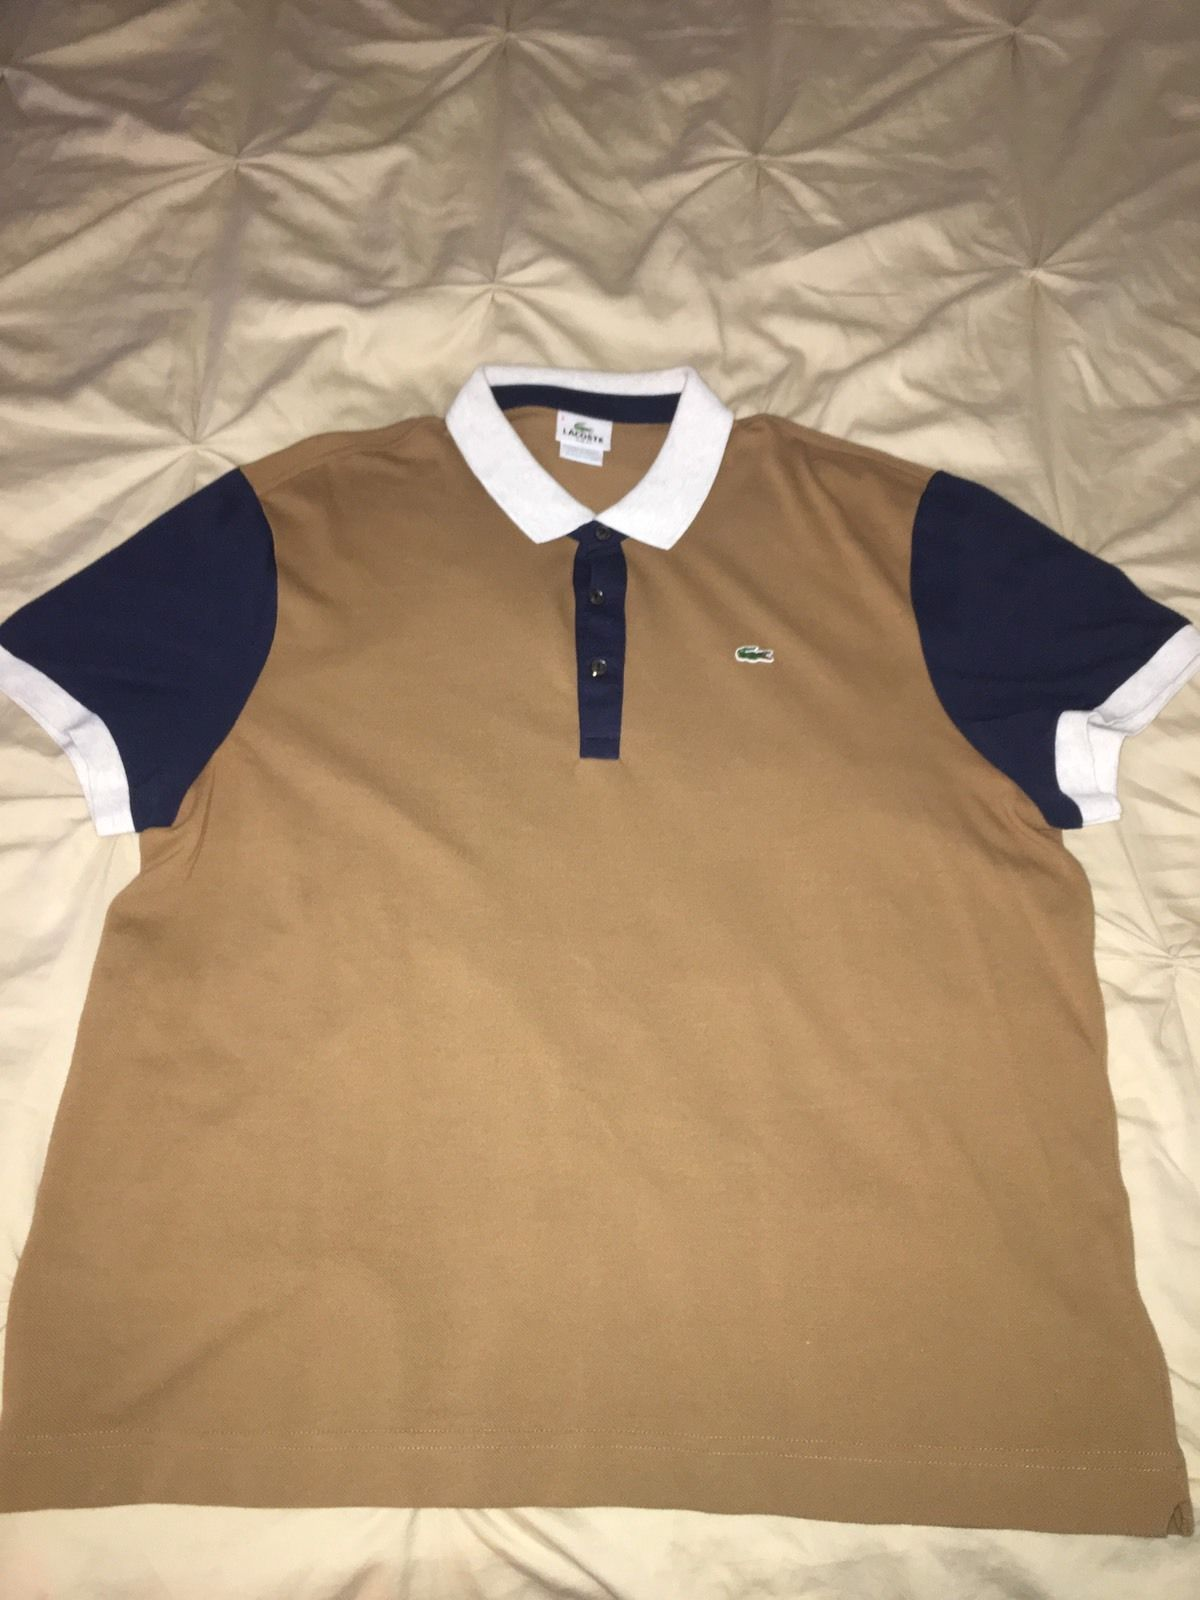 Lacoste Polo Shirts Sizes Joe Maloy